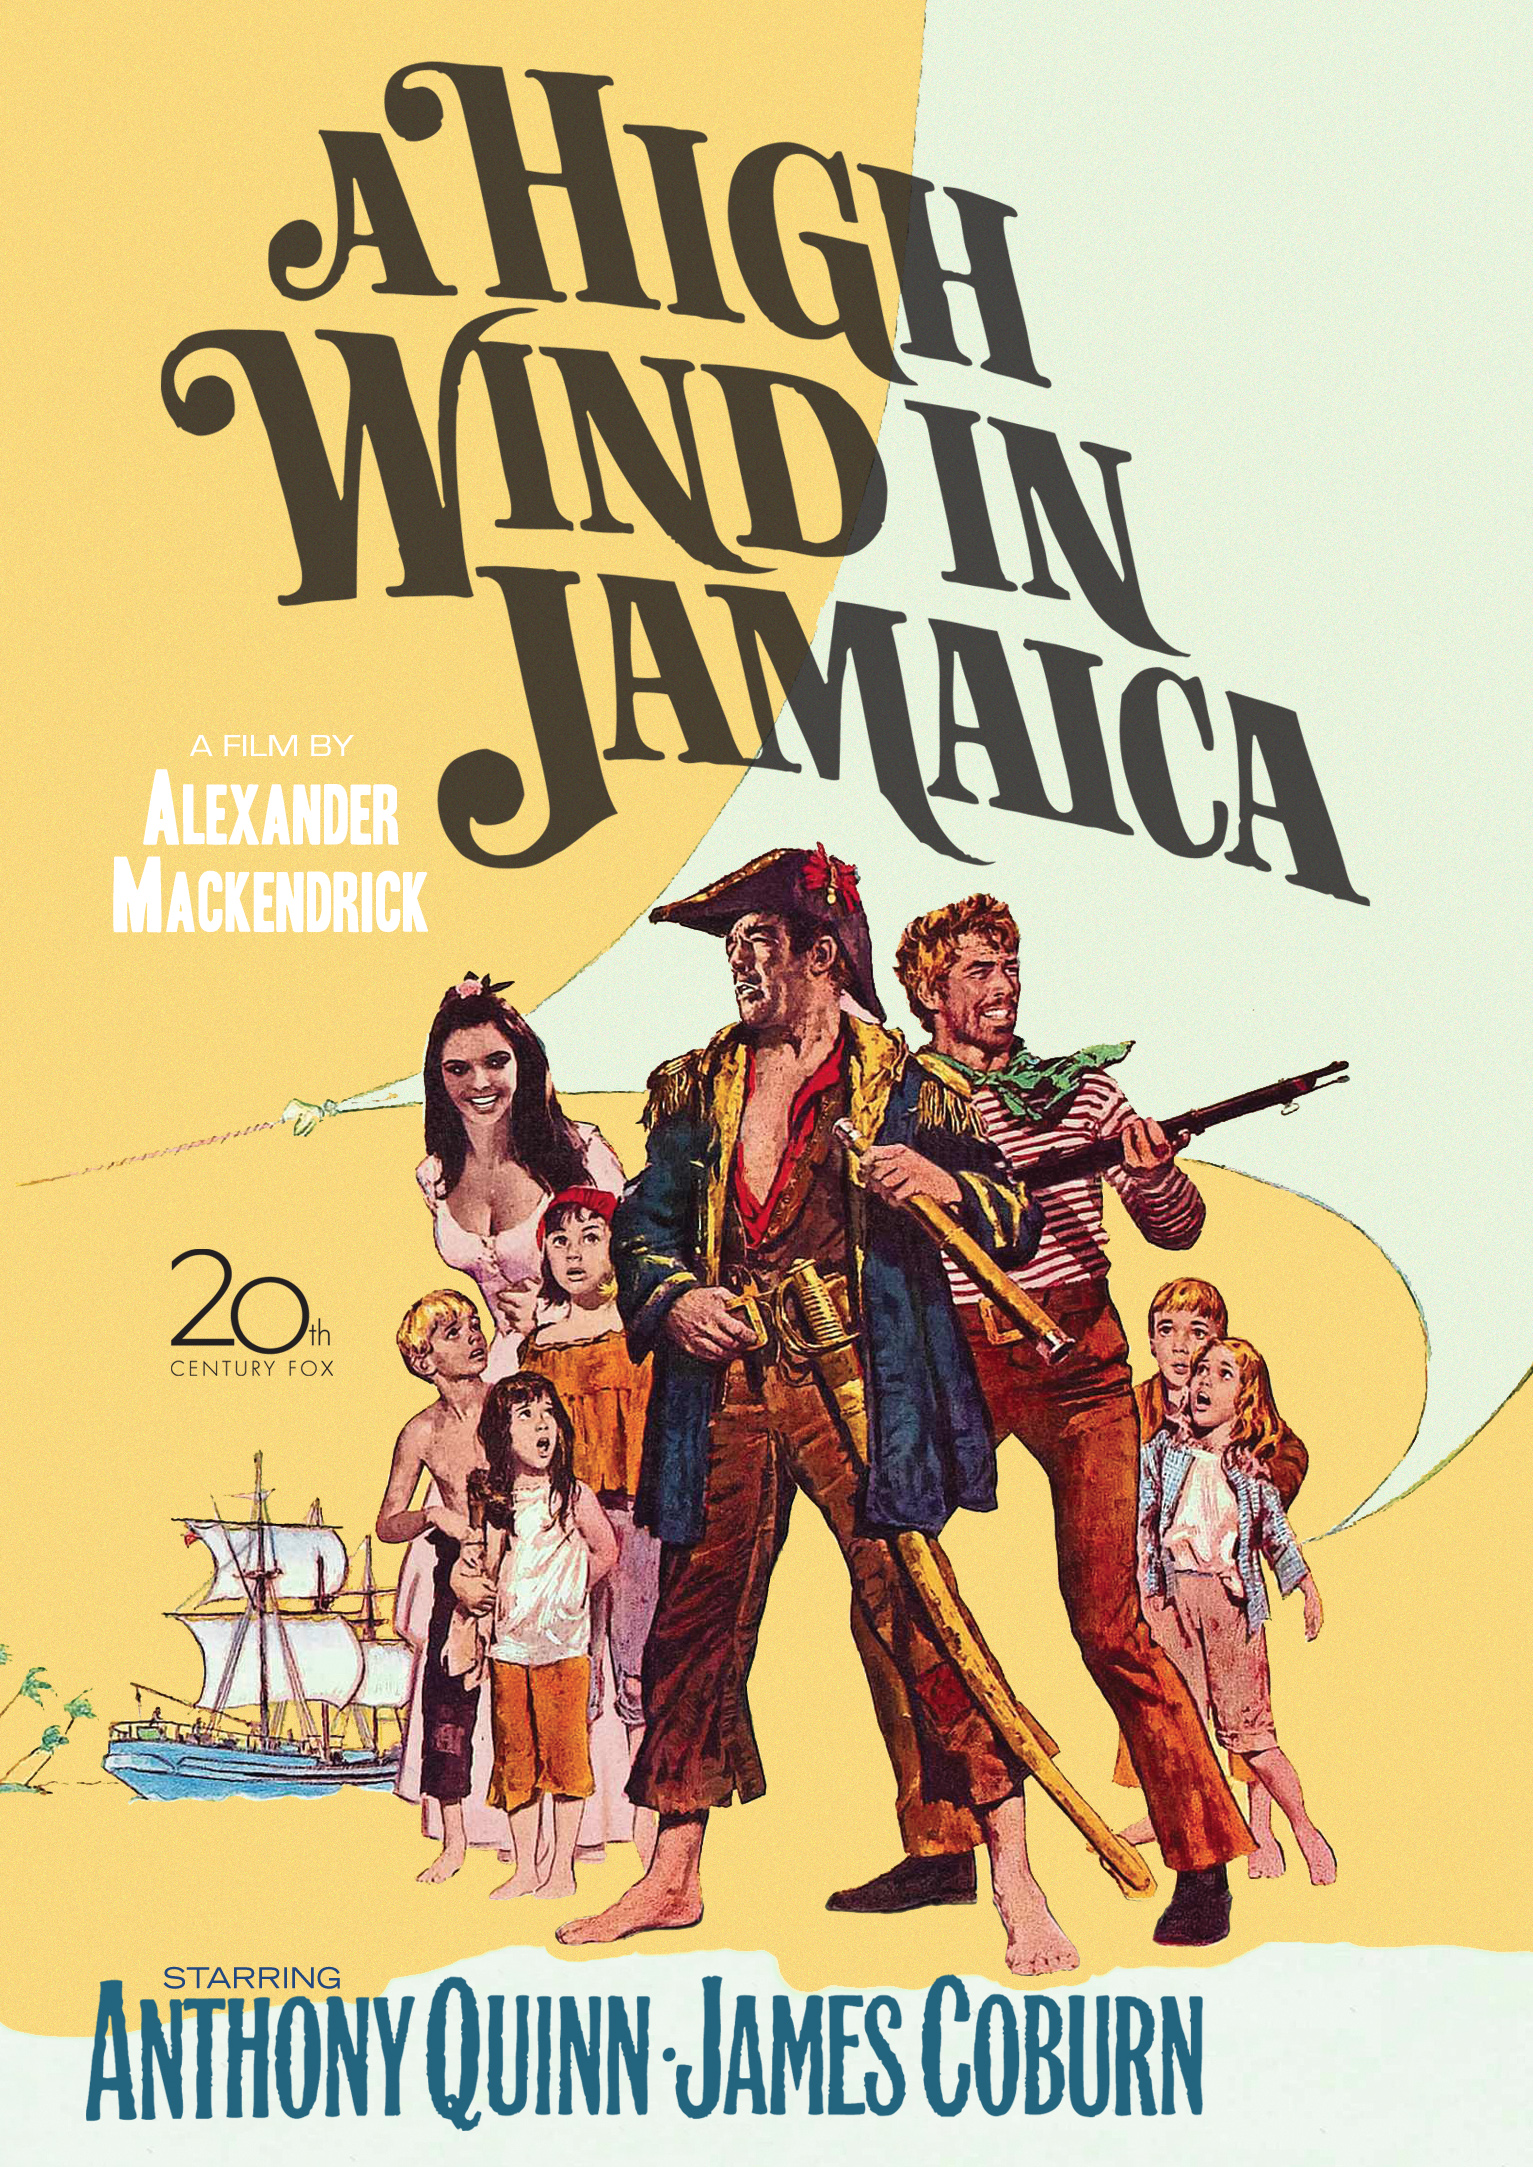 a high wind in jamaica About a high wind in jamaica richard hughes's celebrated short novel is a masterpiece of concentrated narrative its dreamlike action begins among the decayed plantation houses and overwhelming natural abundance of late nineteenth-century jamaica, before moving out onto the high seas, as hughes tells the story of a group of children thrown upon the mercy of a crew of down-at-the-heel pirates.